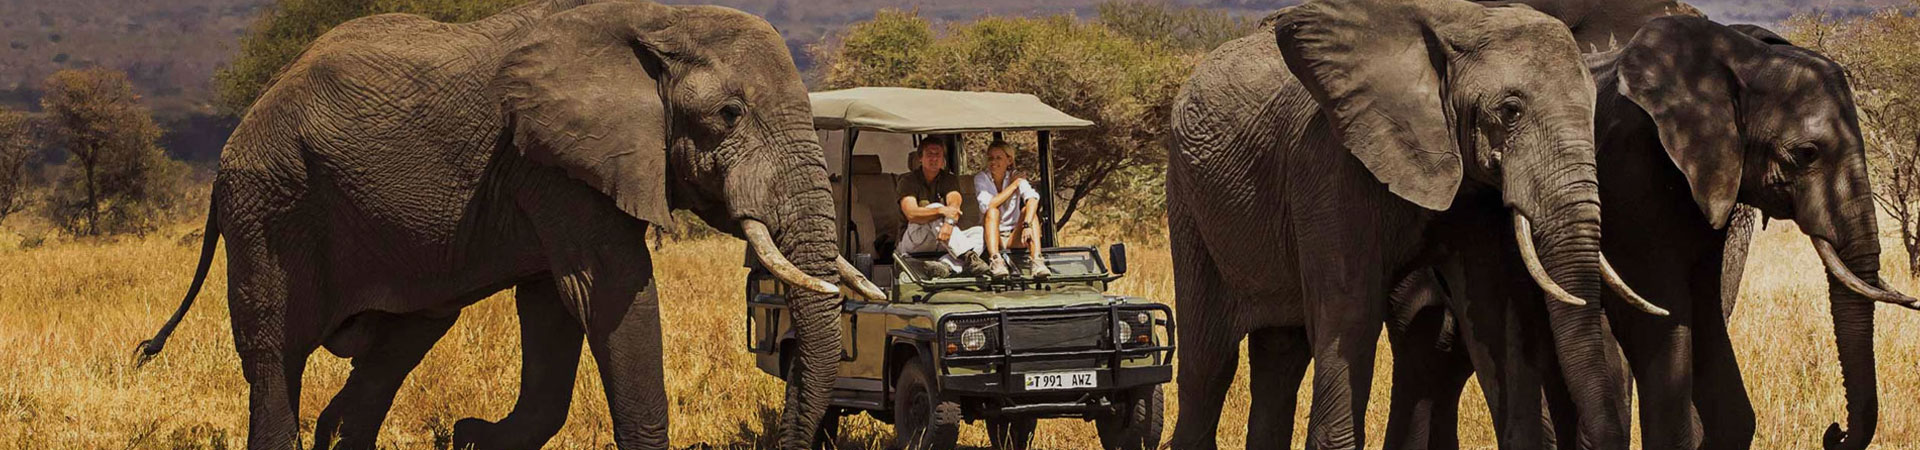 5-Day-Tanzania-Luxury-Safaris.